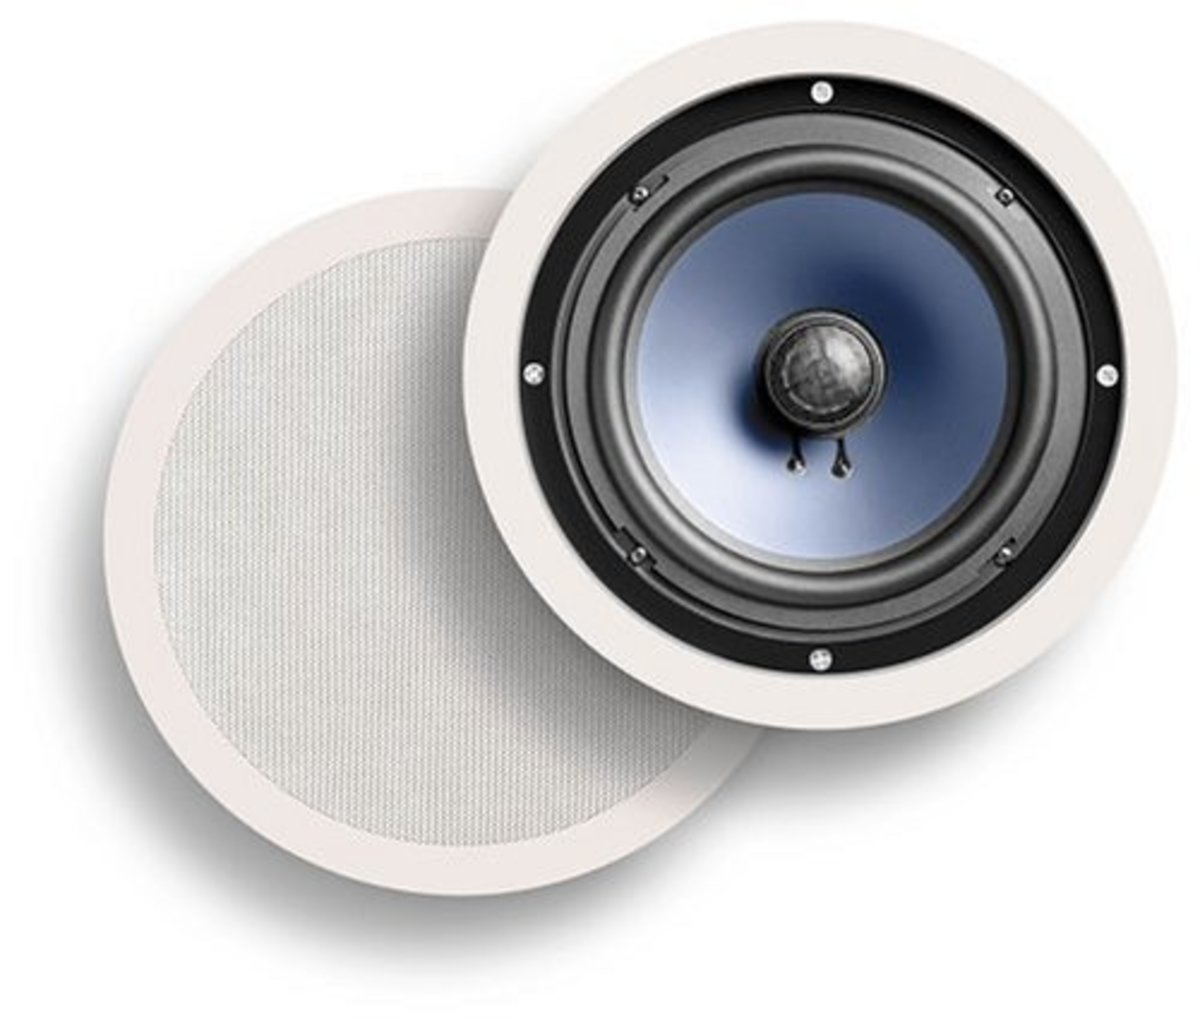 Best InCeiling Speakers for Home Theaters and Surround